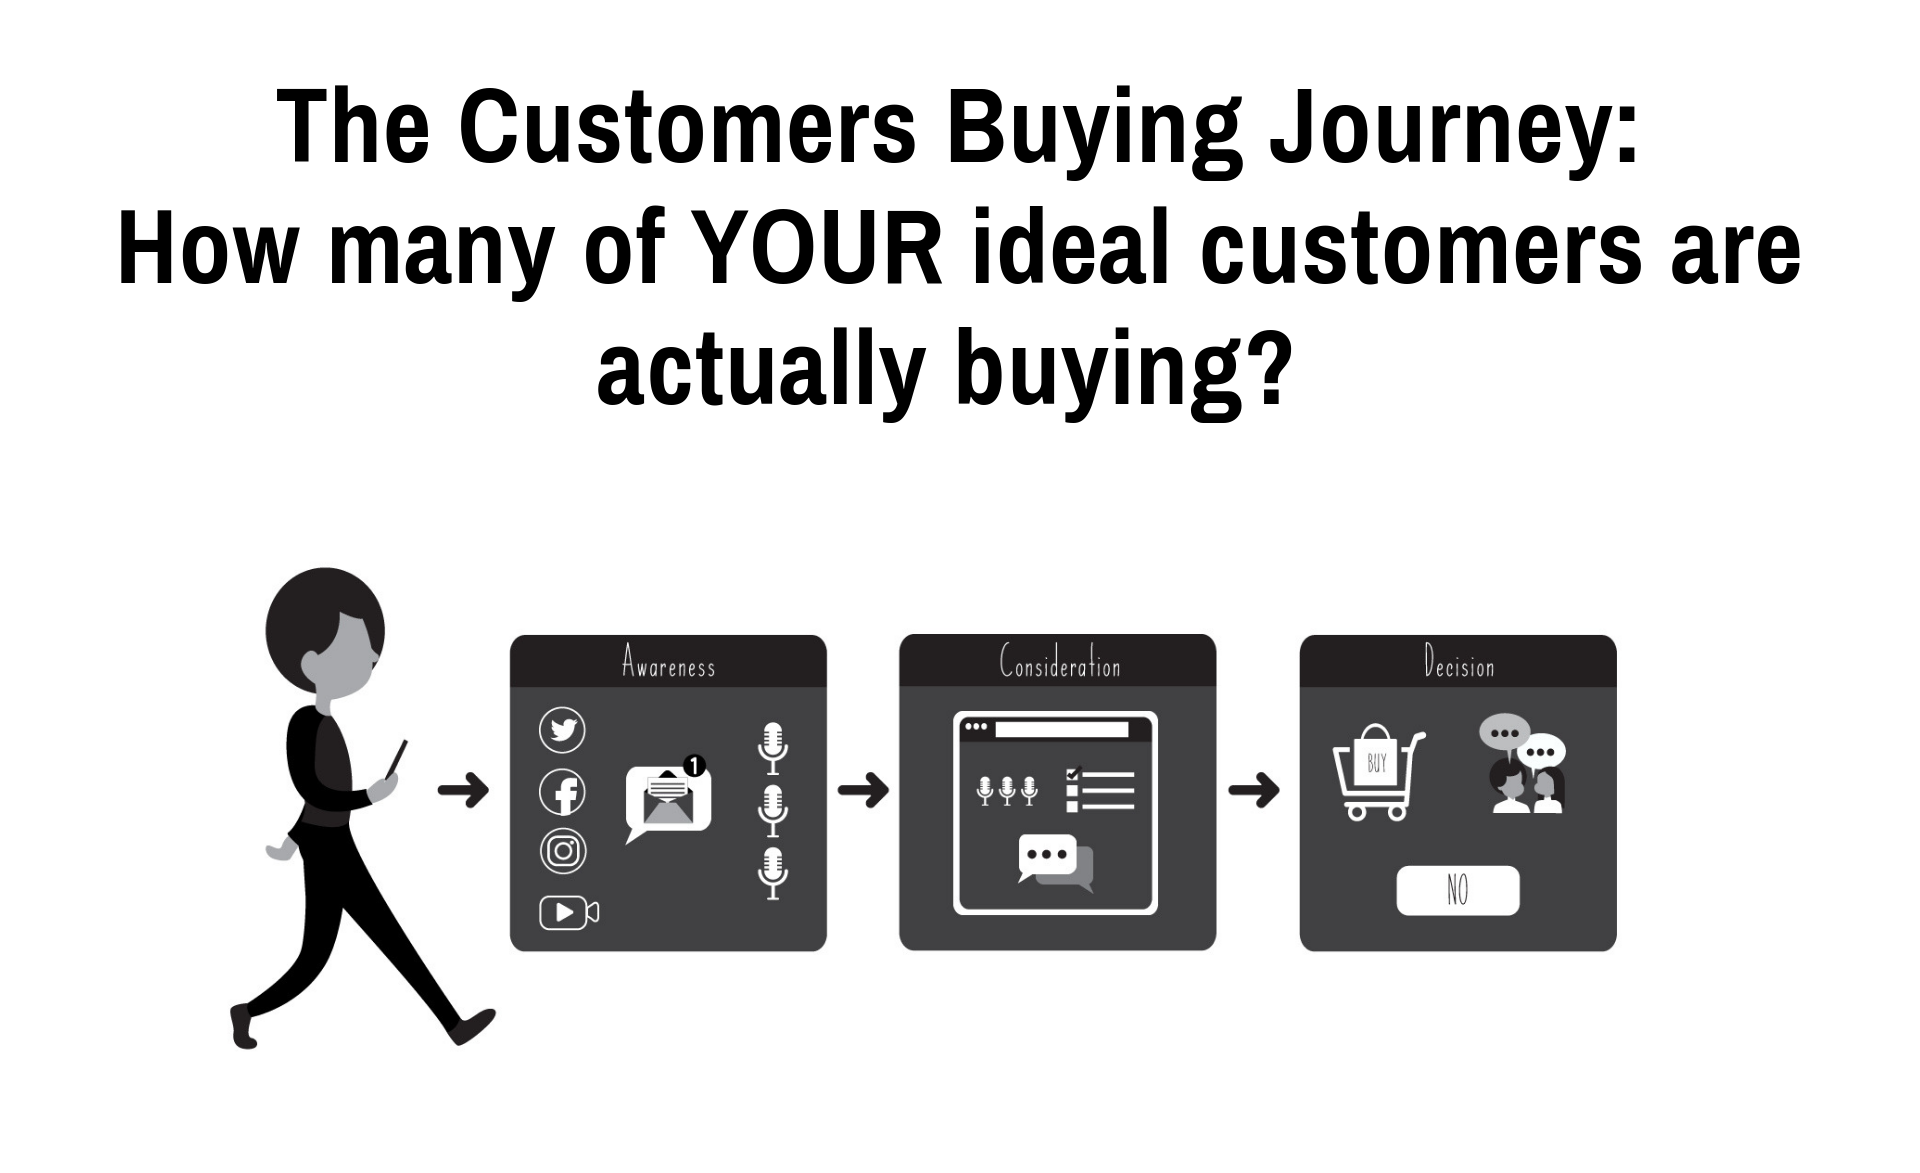 A Customer's Buying Journey: How many of YOUR ideal clients are actually buying?